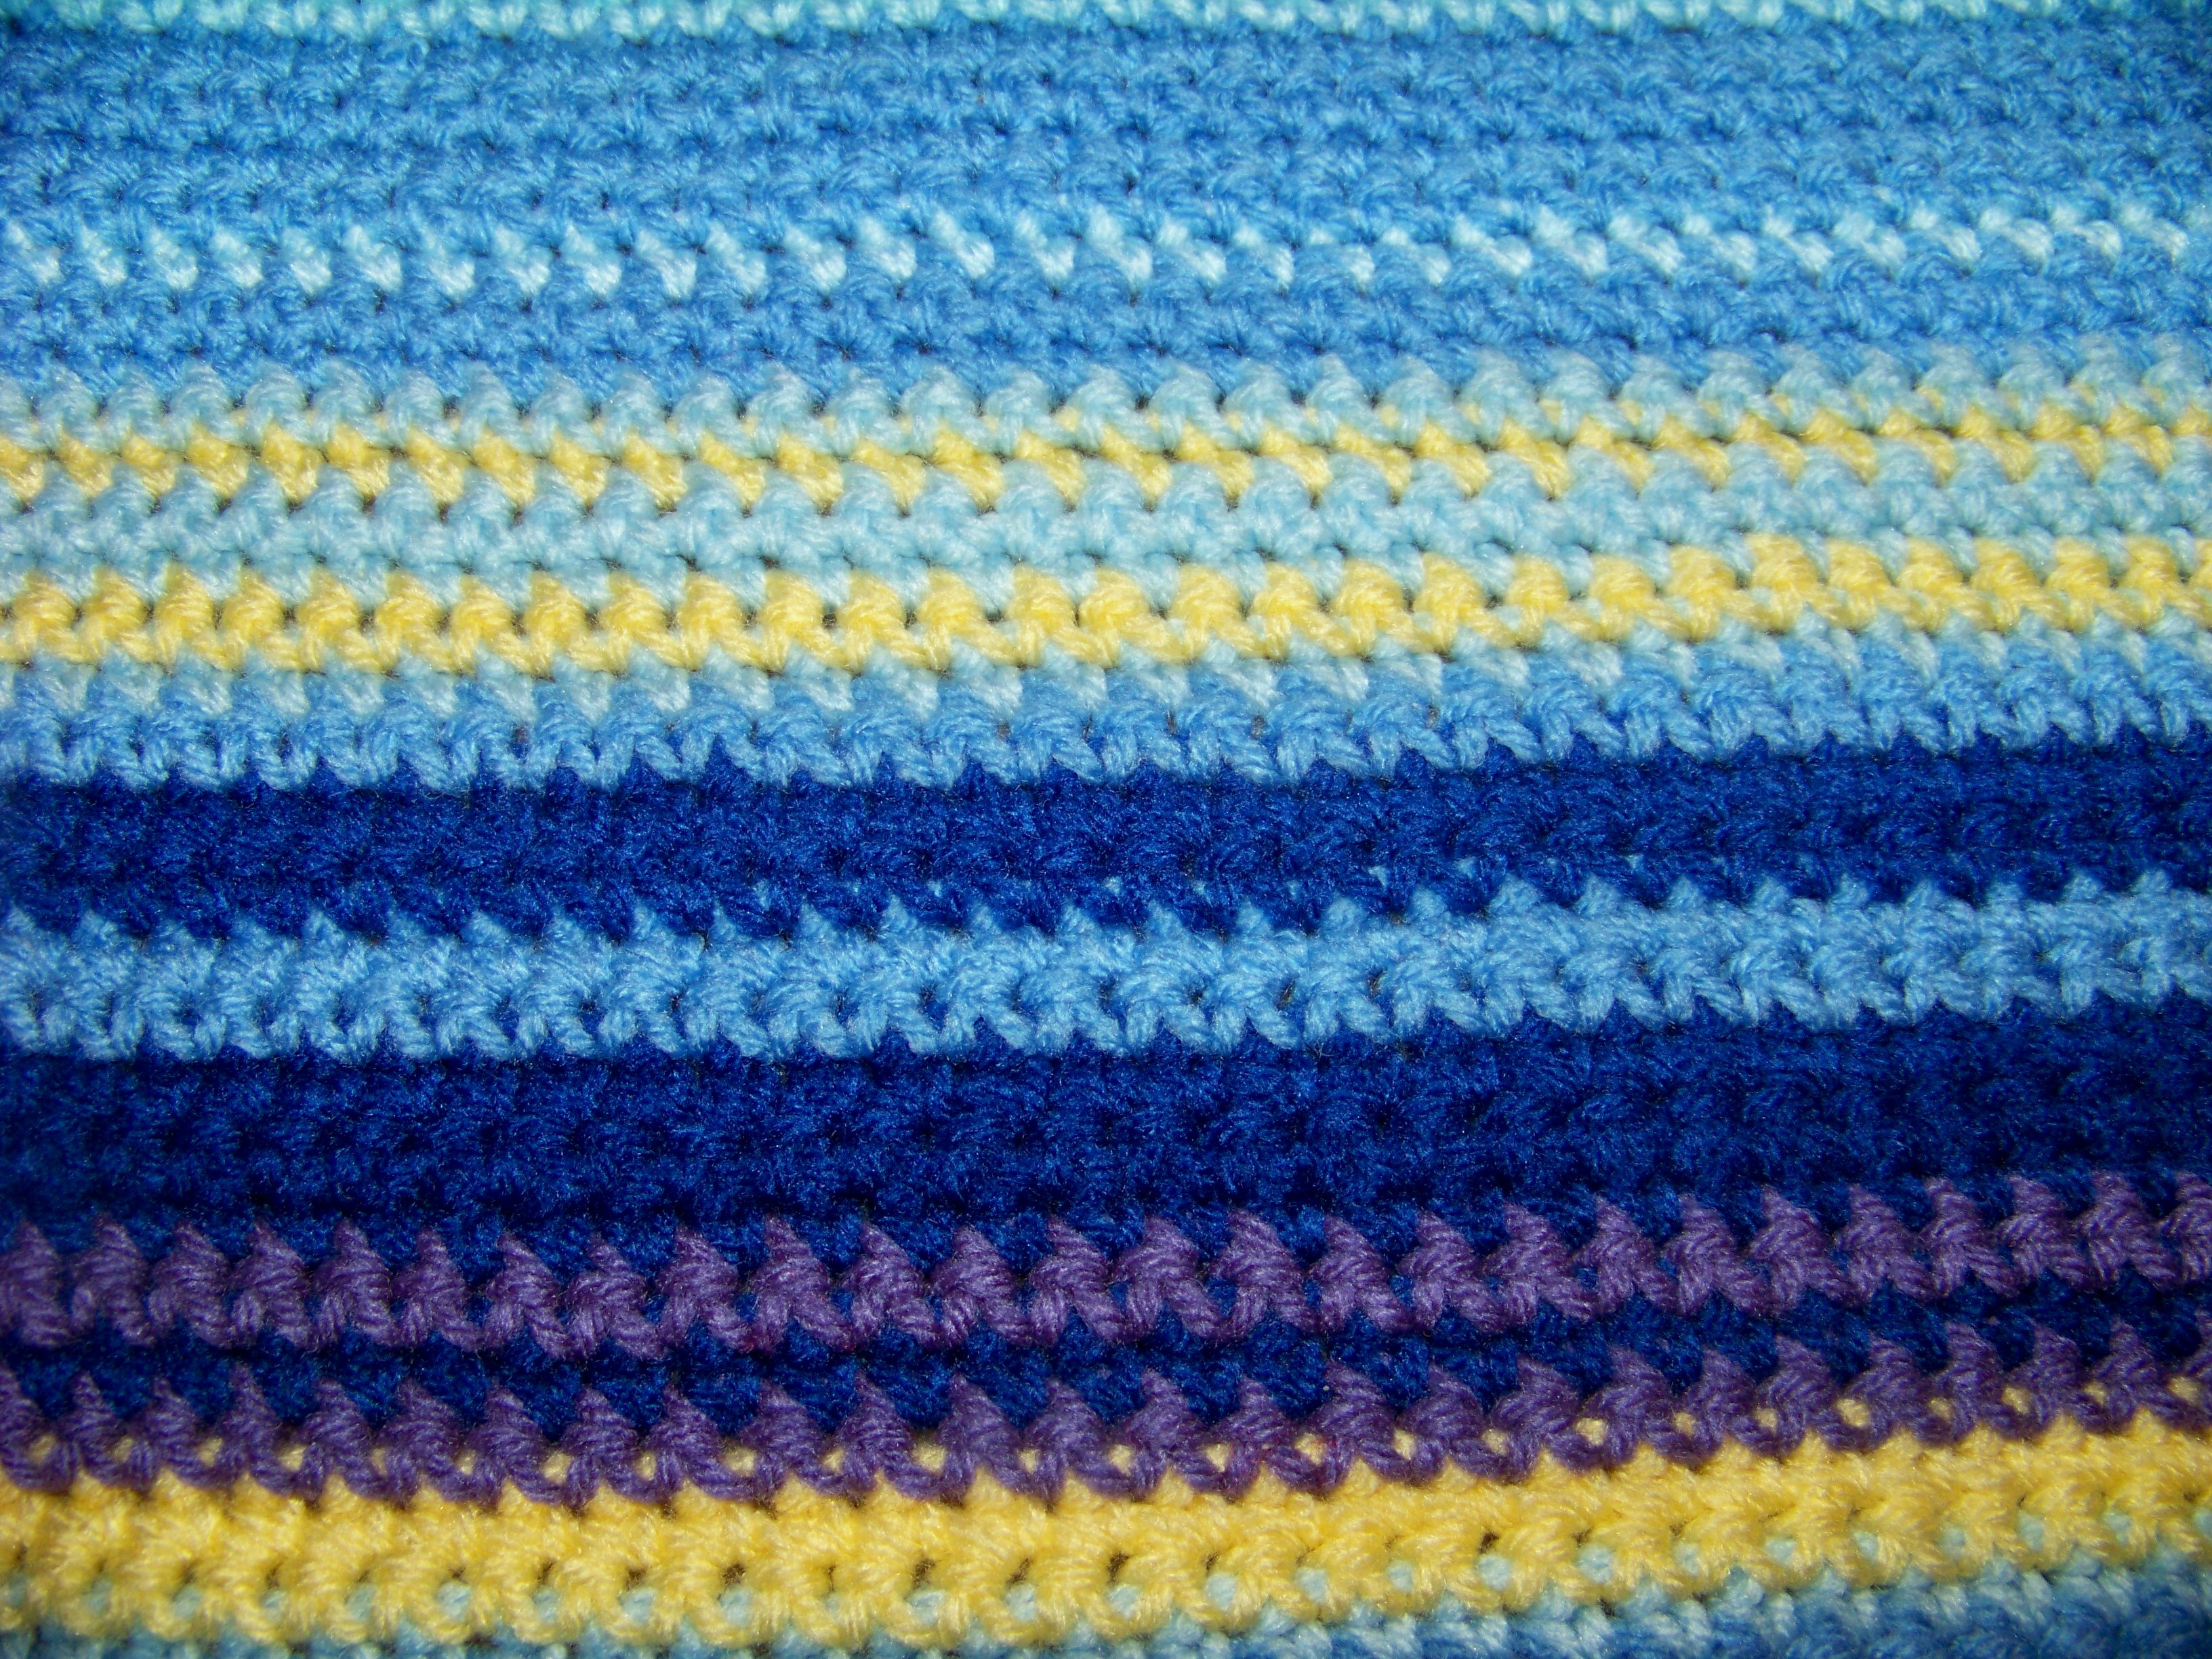 Crochet Throw Blanket Beautiful Crocheted Temperature Blanket Stitching In the Woods Of Great 44 Pics Crochet Throw Blanket